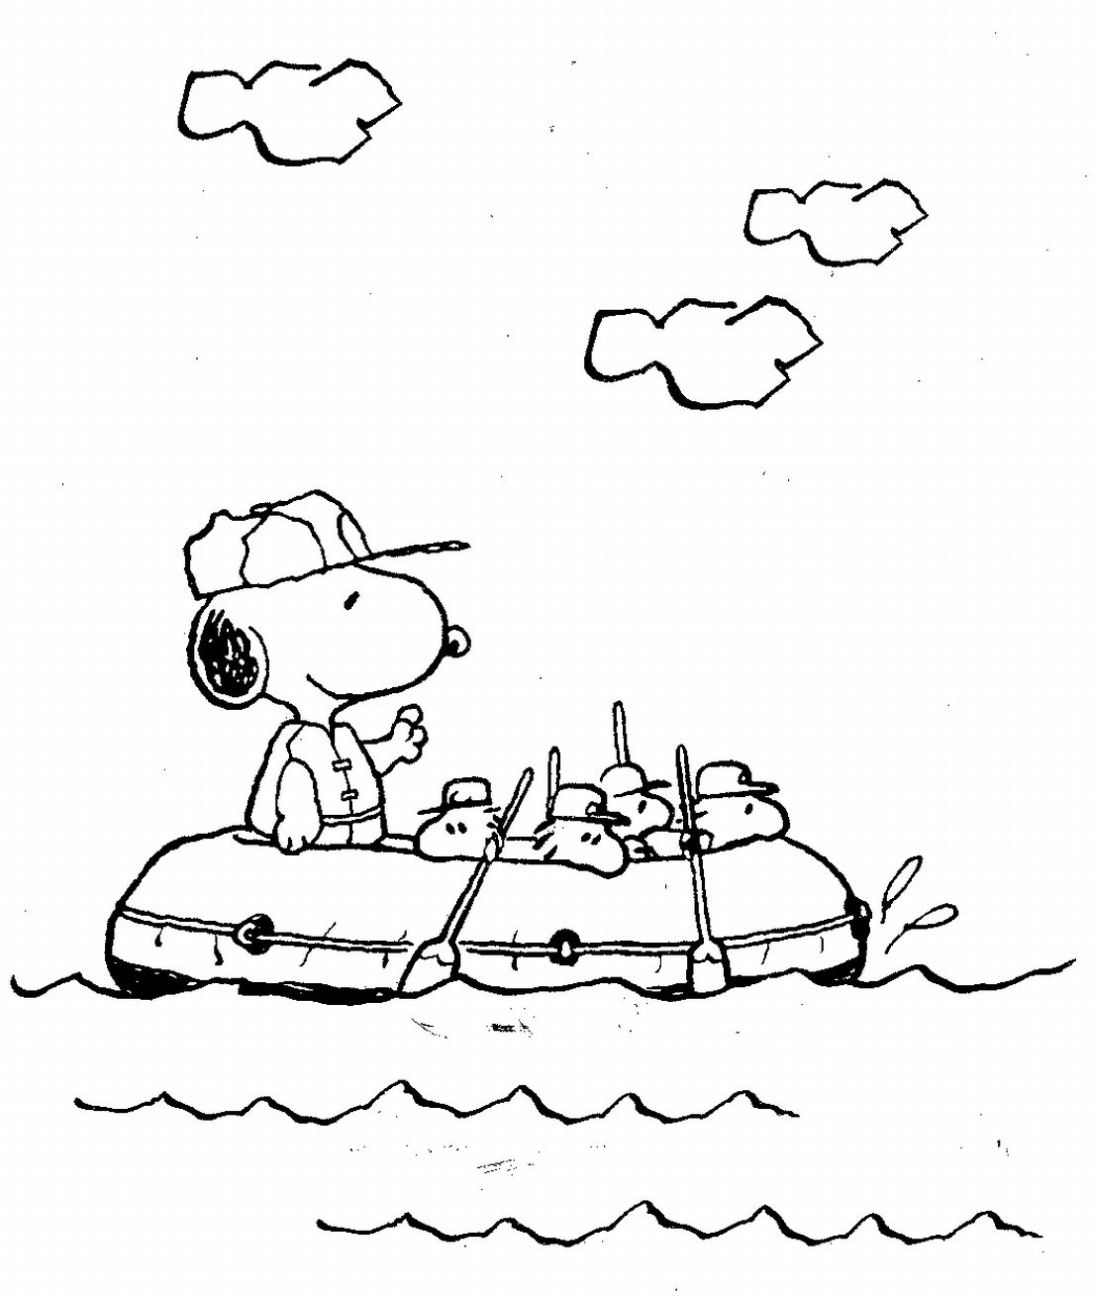 snoopy coloring pages free printable snoopy coloring pages for kids pages snoopy coloring